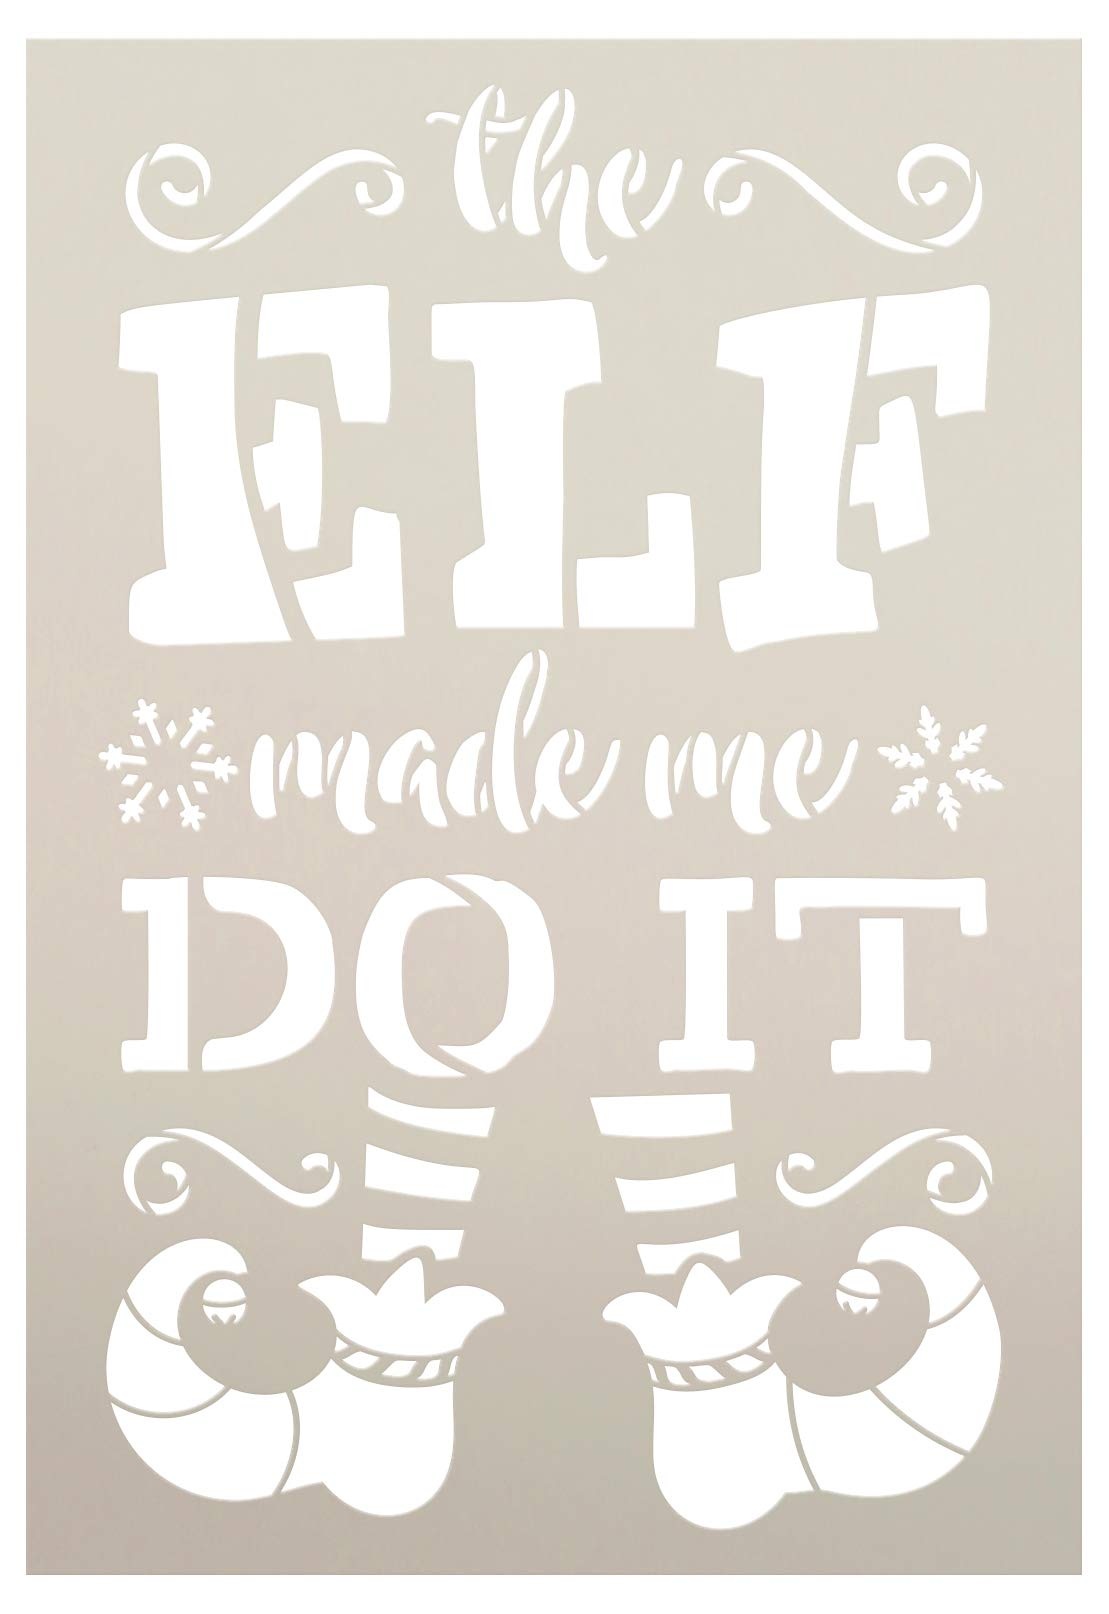 Elf Made Me Do It Stencil with Shoes and Stockings by StudioR12 | Snowflake Holiday Christmas Decor | Reusable Mylar Template | Paint Wood Signs | DIY Seasonal Home Crafting | Select Size (7'' x 10'') by STUDIOR12 STUDIO R12